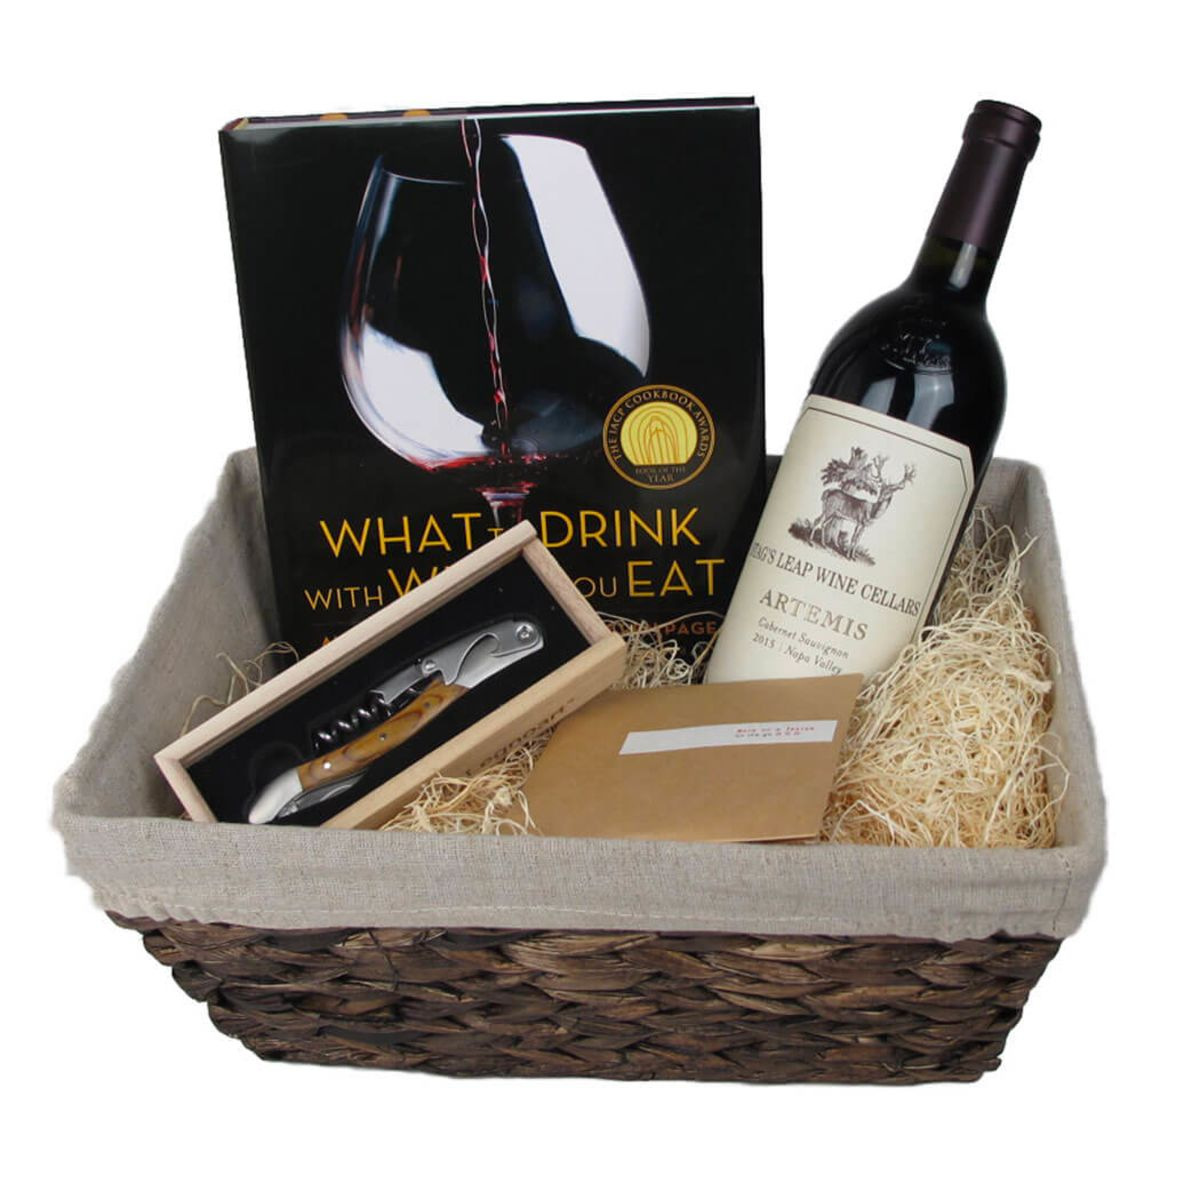 19 Best Wine Gifts from Napa Valley for